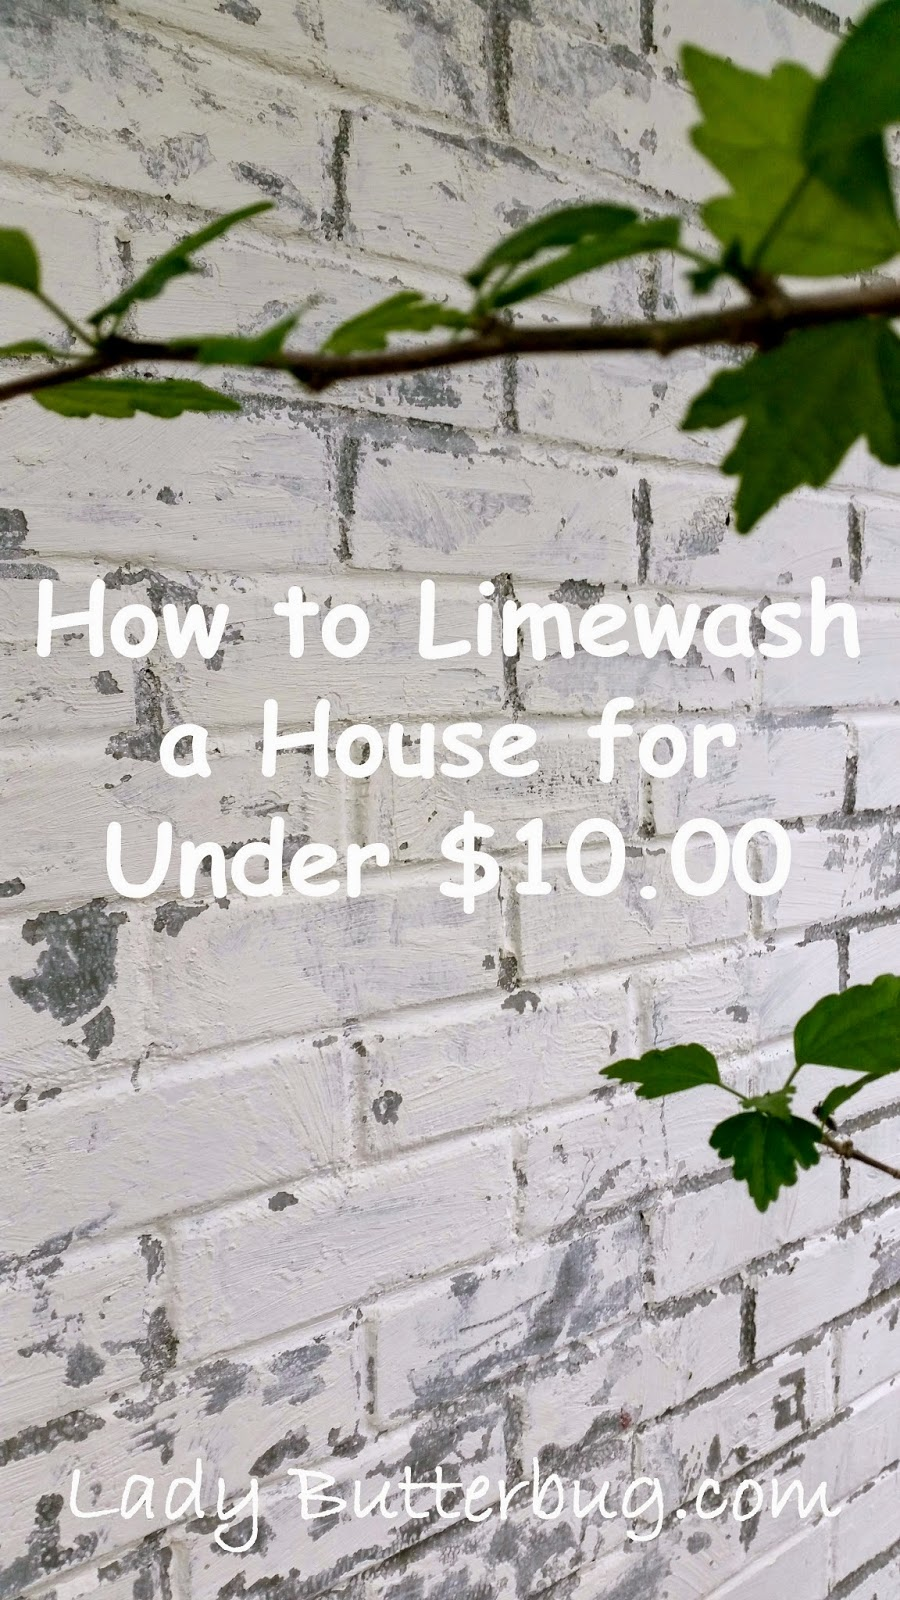 How I Limewashed My House for Under $10.00 ~ | Lady erbug How To Lime Wash Exterior Brick on lime wash kitchen, lime wash pix, lime wash stone, lime wash colonial, lime paint brick house, lime wash traditional home, lime wash paint recipe, lime wash stucco shower, lime wash cement, lime washed brick, lime wash examples, lime washing brick interior,